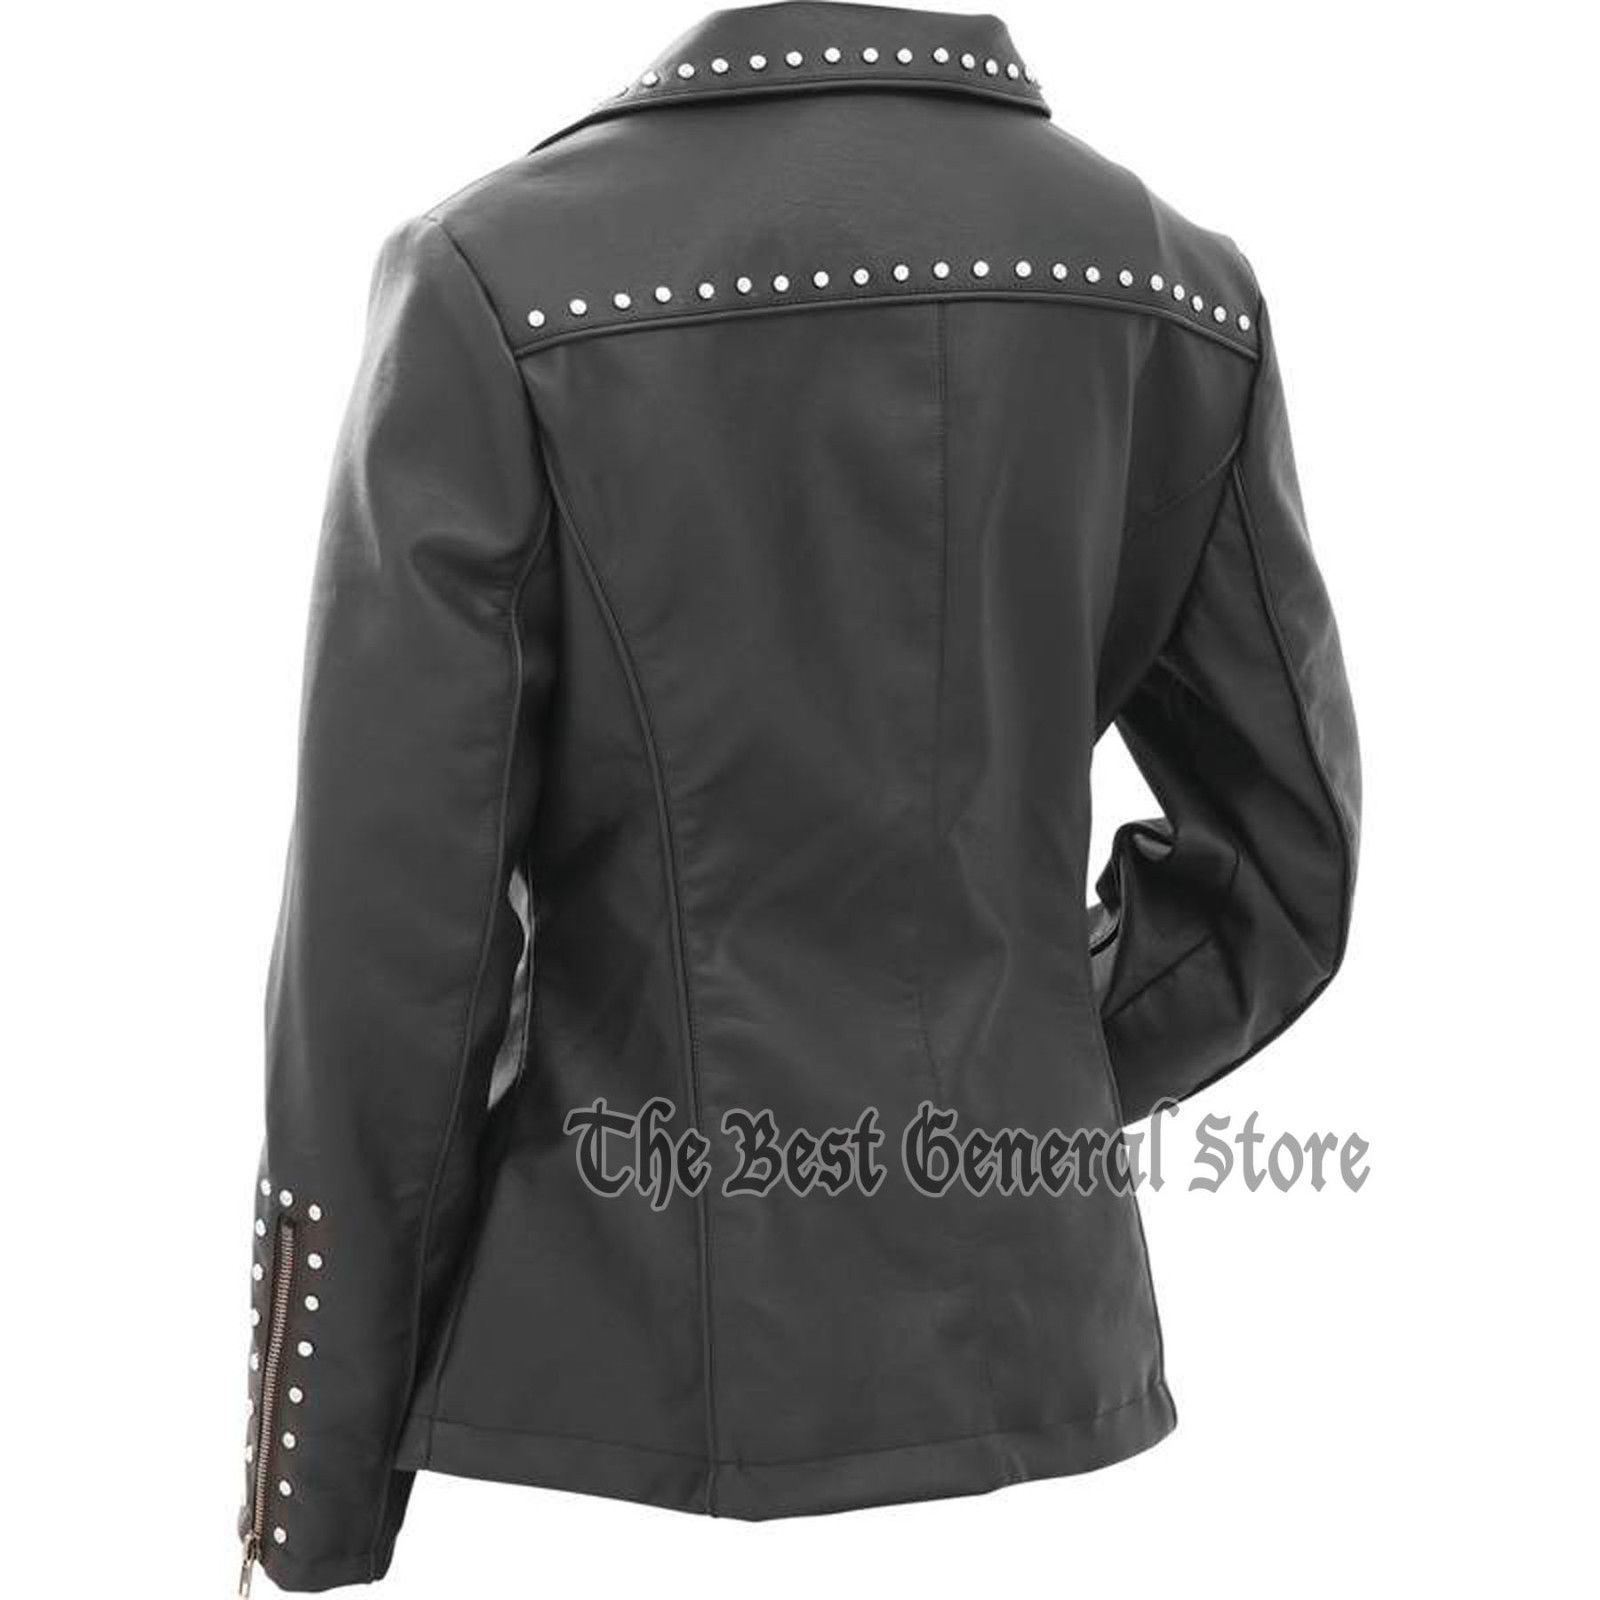 Womans Ladies Tailored Black Faux Leather Studded Jacket Coat with Studs Lined